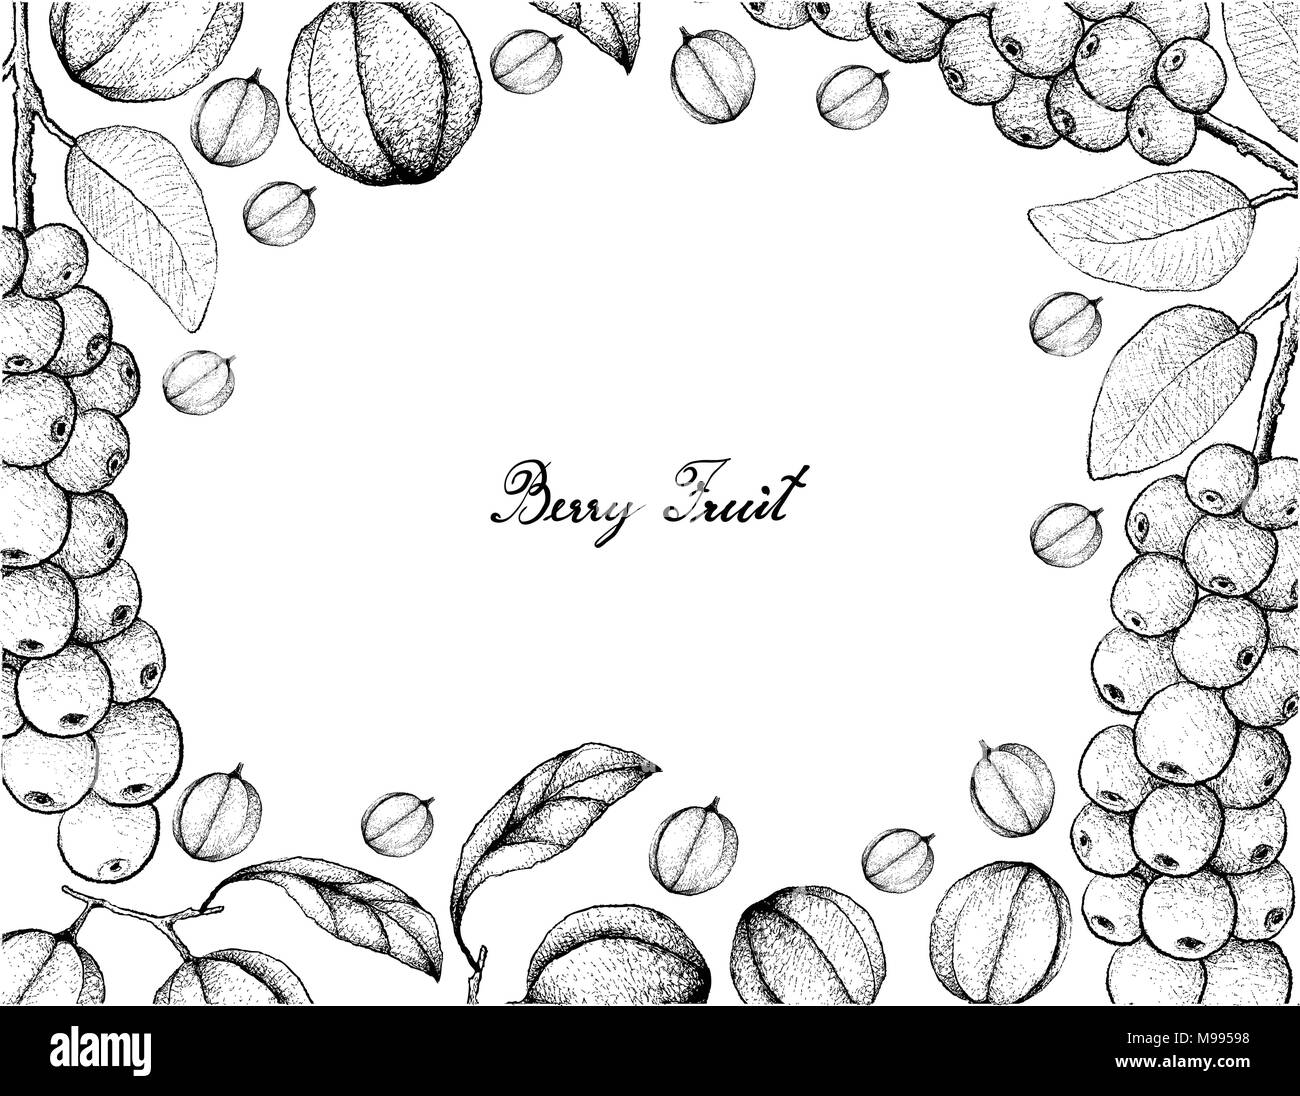 Wild Berries Black and White Stock Photos & Images - Alamy